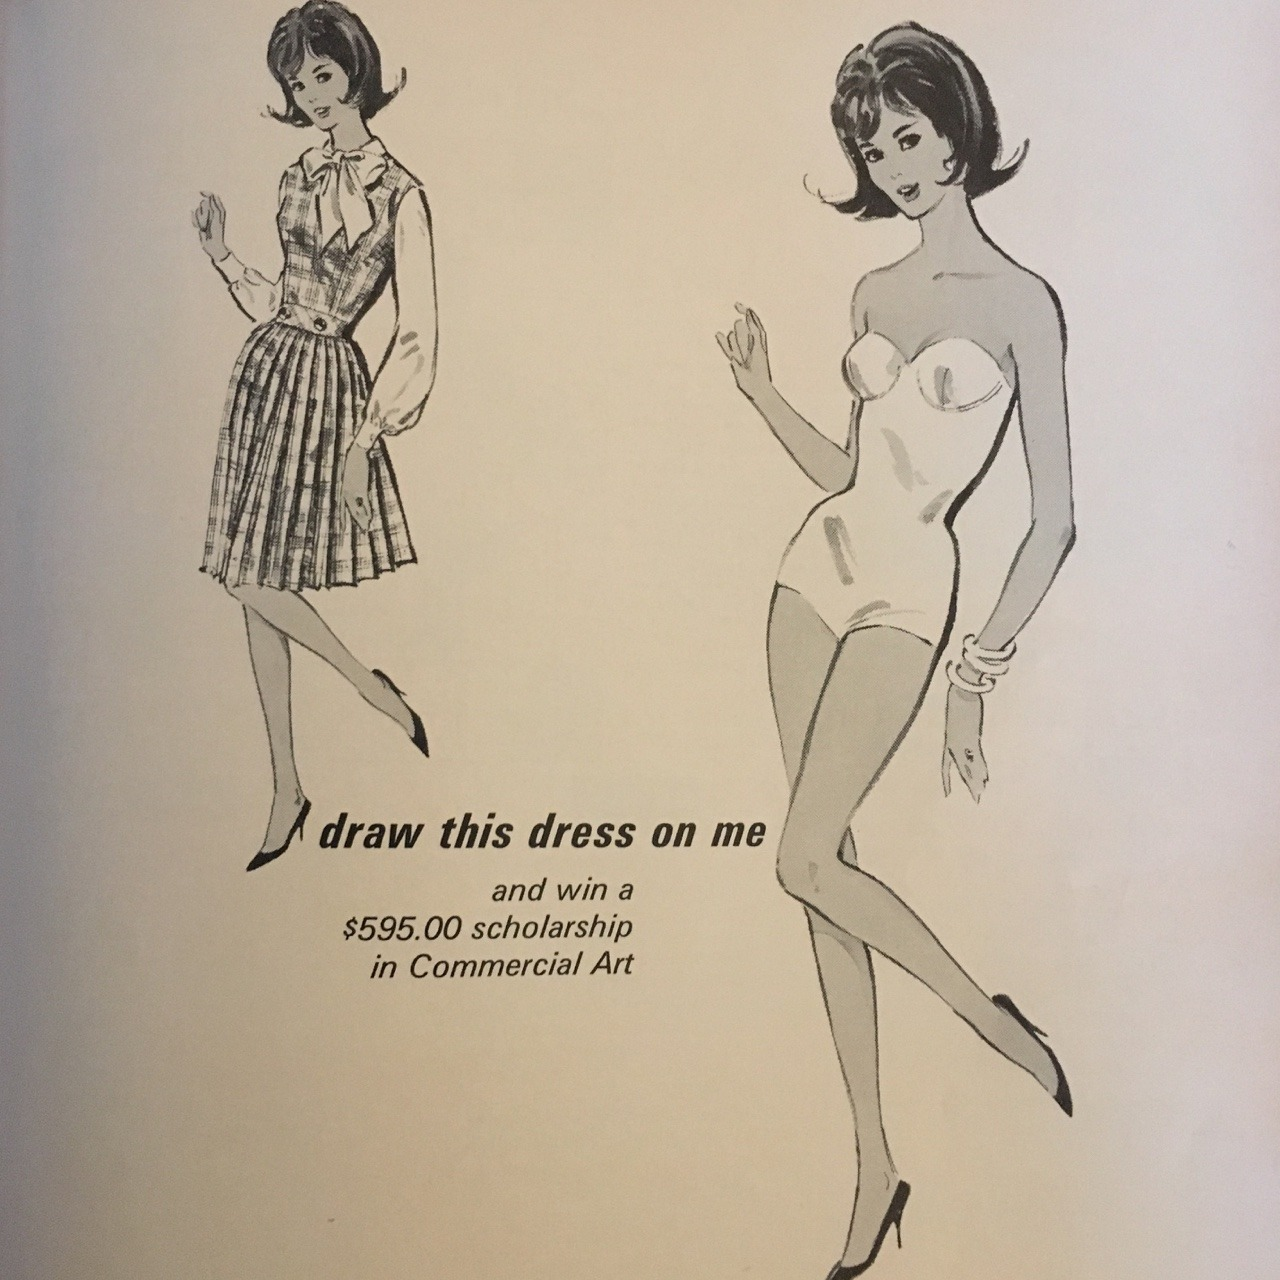 """""""Draw this dress on me""""   Art Instruction School. Co-ed Magazine. May 1965  Art Instruction Schools, was famous for their ads daring you to draw and enroll in their art classes. The school was founded in 1914 by the Bureau of Engraving as a training program for illustrators in the growing printing industry and commercial art. Through the years, they became the top home-instruction art program thanks to the infamous advertising campaign, and became known as the """"Draw Me!"""" school. One famous student who also became an instructor at the school was Charles Schultz, and several of his characters for  Peanuts  were developed and inspired by his friends and colleagues at the school.  The school was operated through mail correspondence. Students were sent a textbook and were given assignments that were mailed one at a time. They'd send their work back, and the instructor would grade it and send the next lesson. As the world increasingly became more digital, Art Instruction Schools was still hanging on, but sadly, the model proved to be archaic, and the school is no longer accepting new enrollments and will be shut down at the end of 2018."""